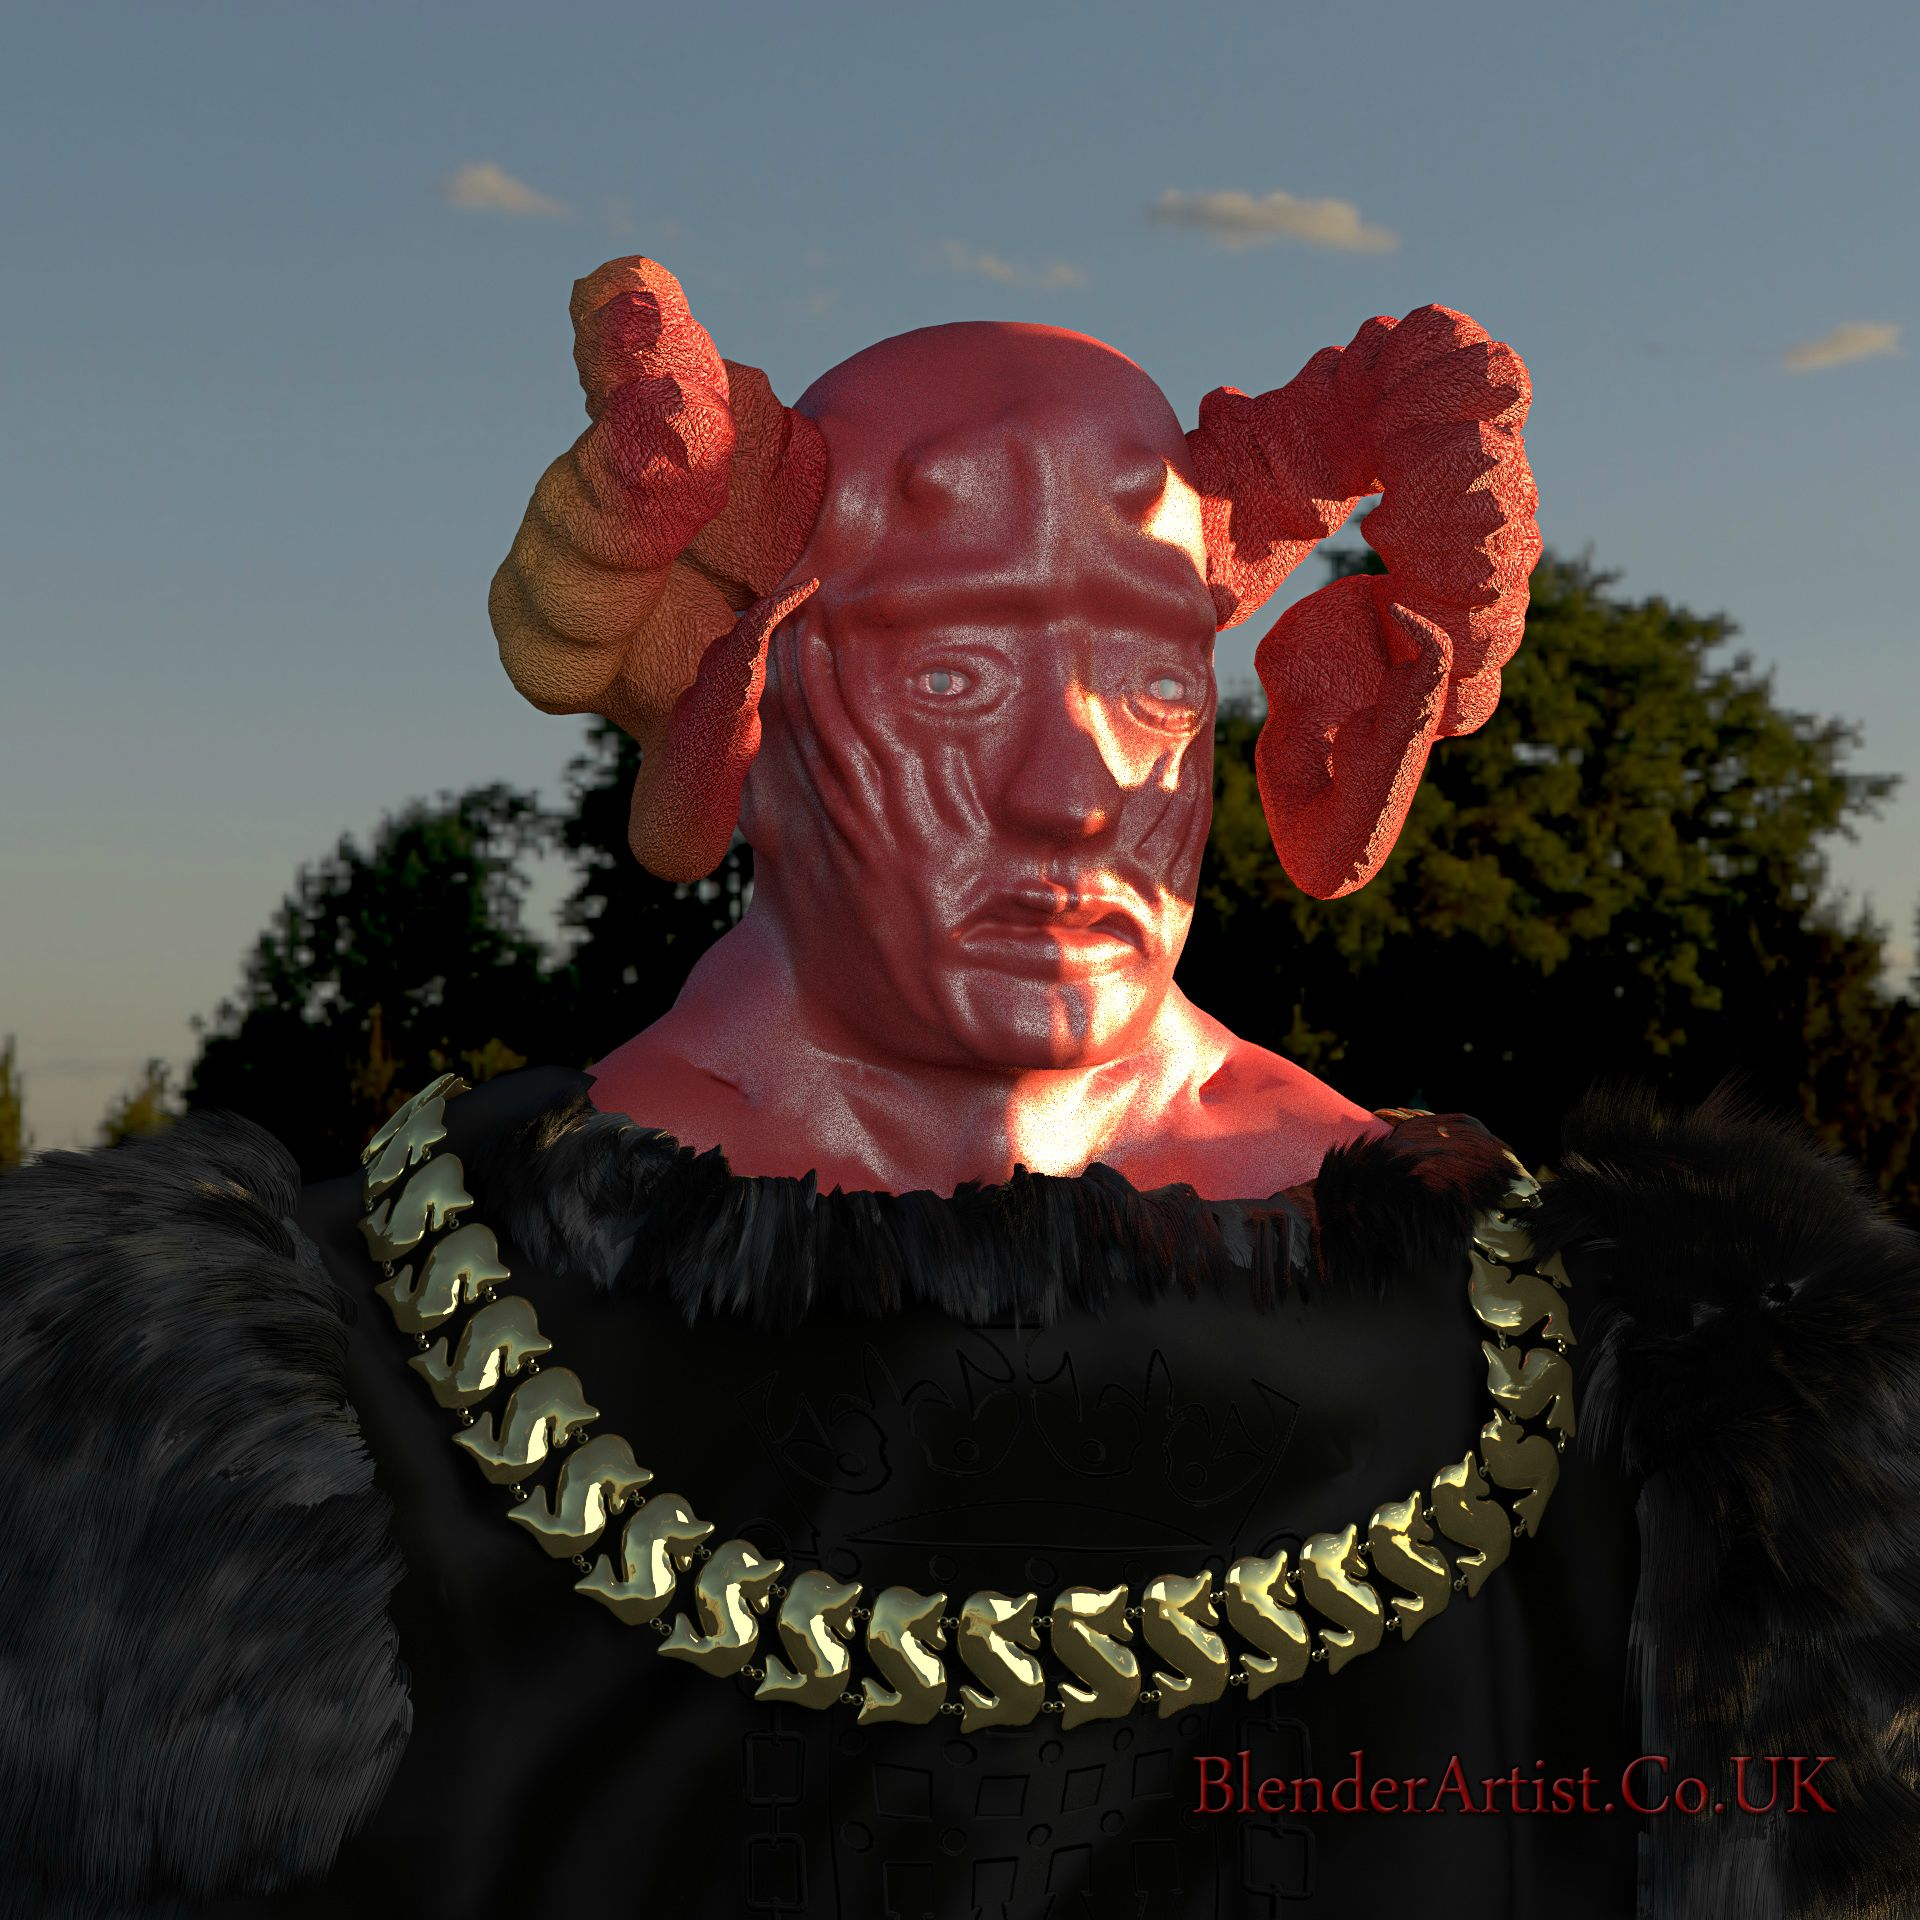 Dantalion the 69th Demon of the Goetia. His human form is varied but by his followers actions you will know of his presence. He gives all knowledge and secrets to his followers who have dared to make a pact with him. © BlenderArtist.Co.Uk 2014.